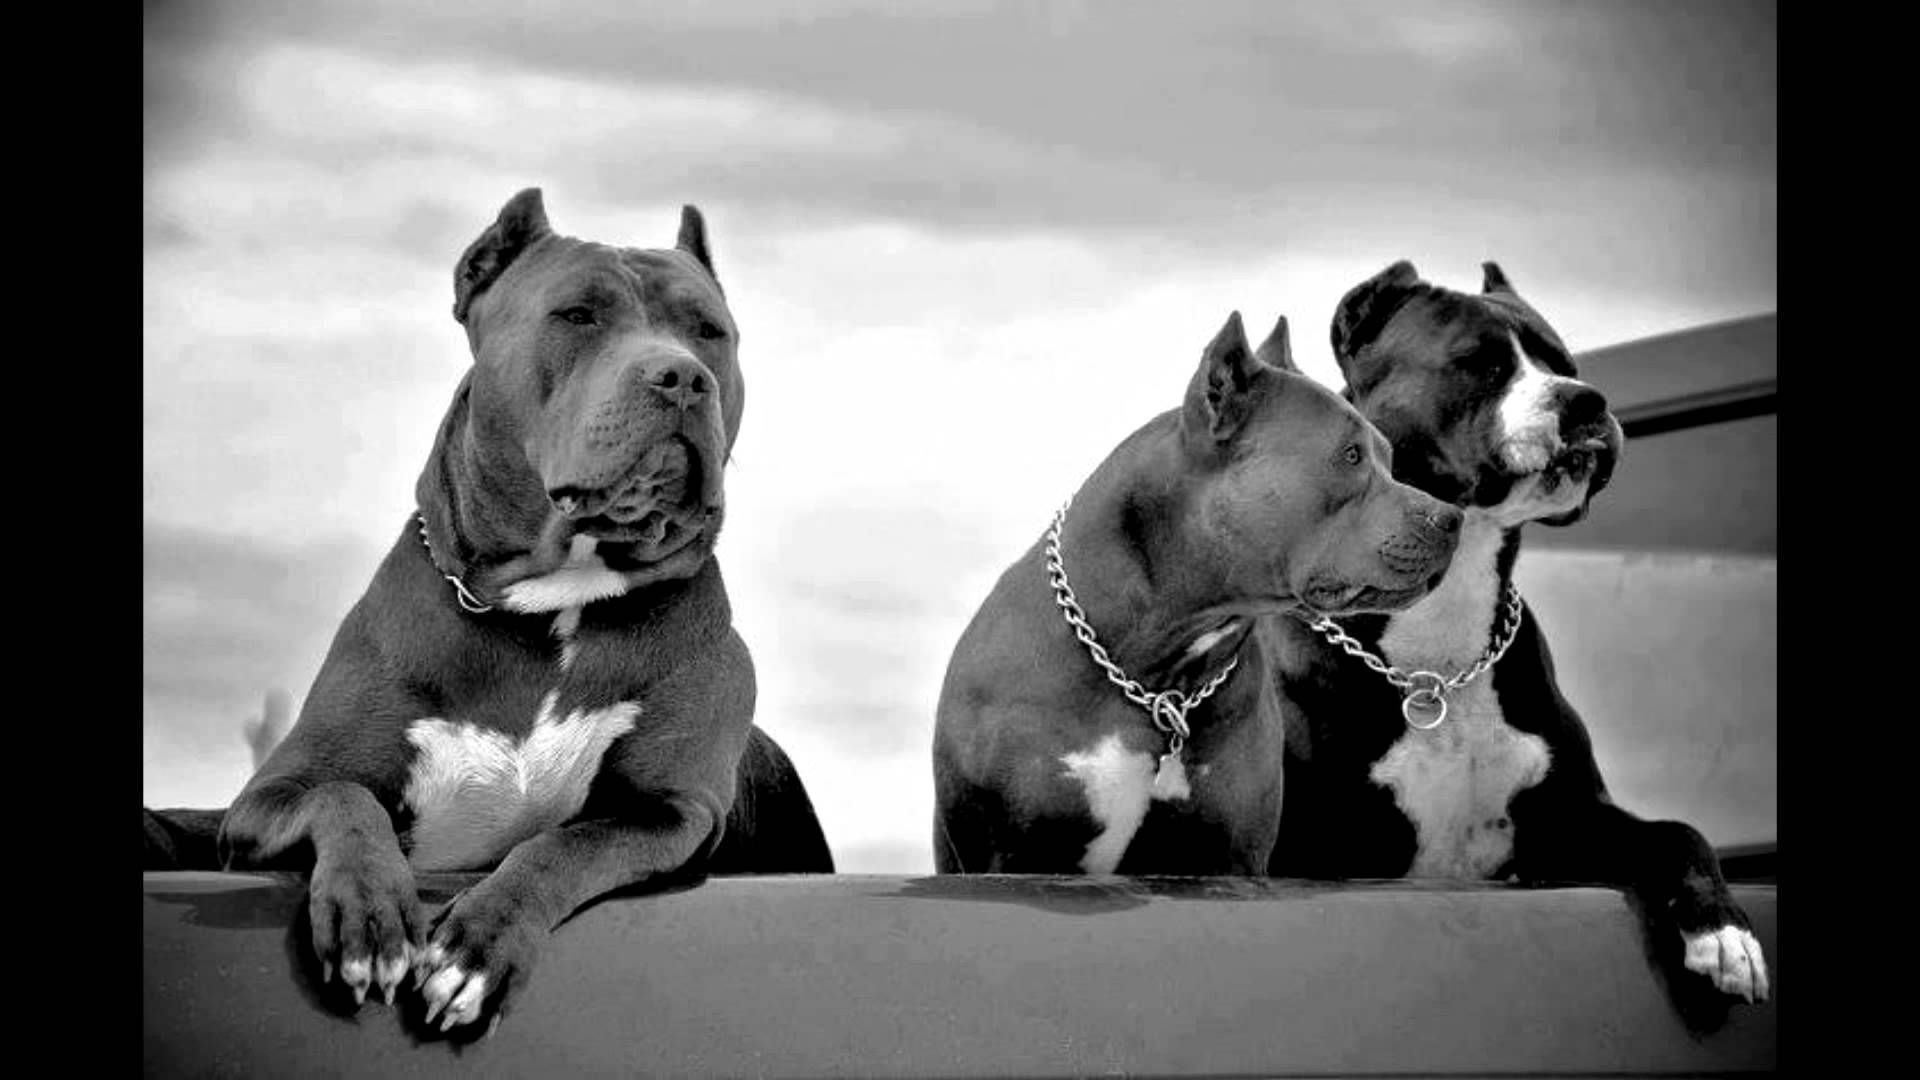 1920x1080 Res: , Pitbull Dog Wallpapers Wallpaper